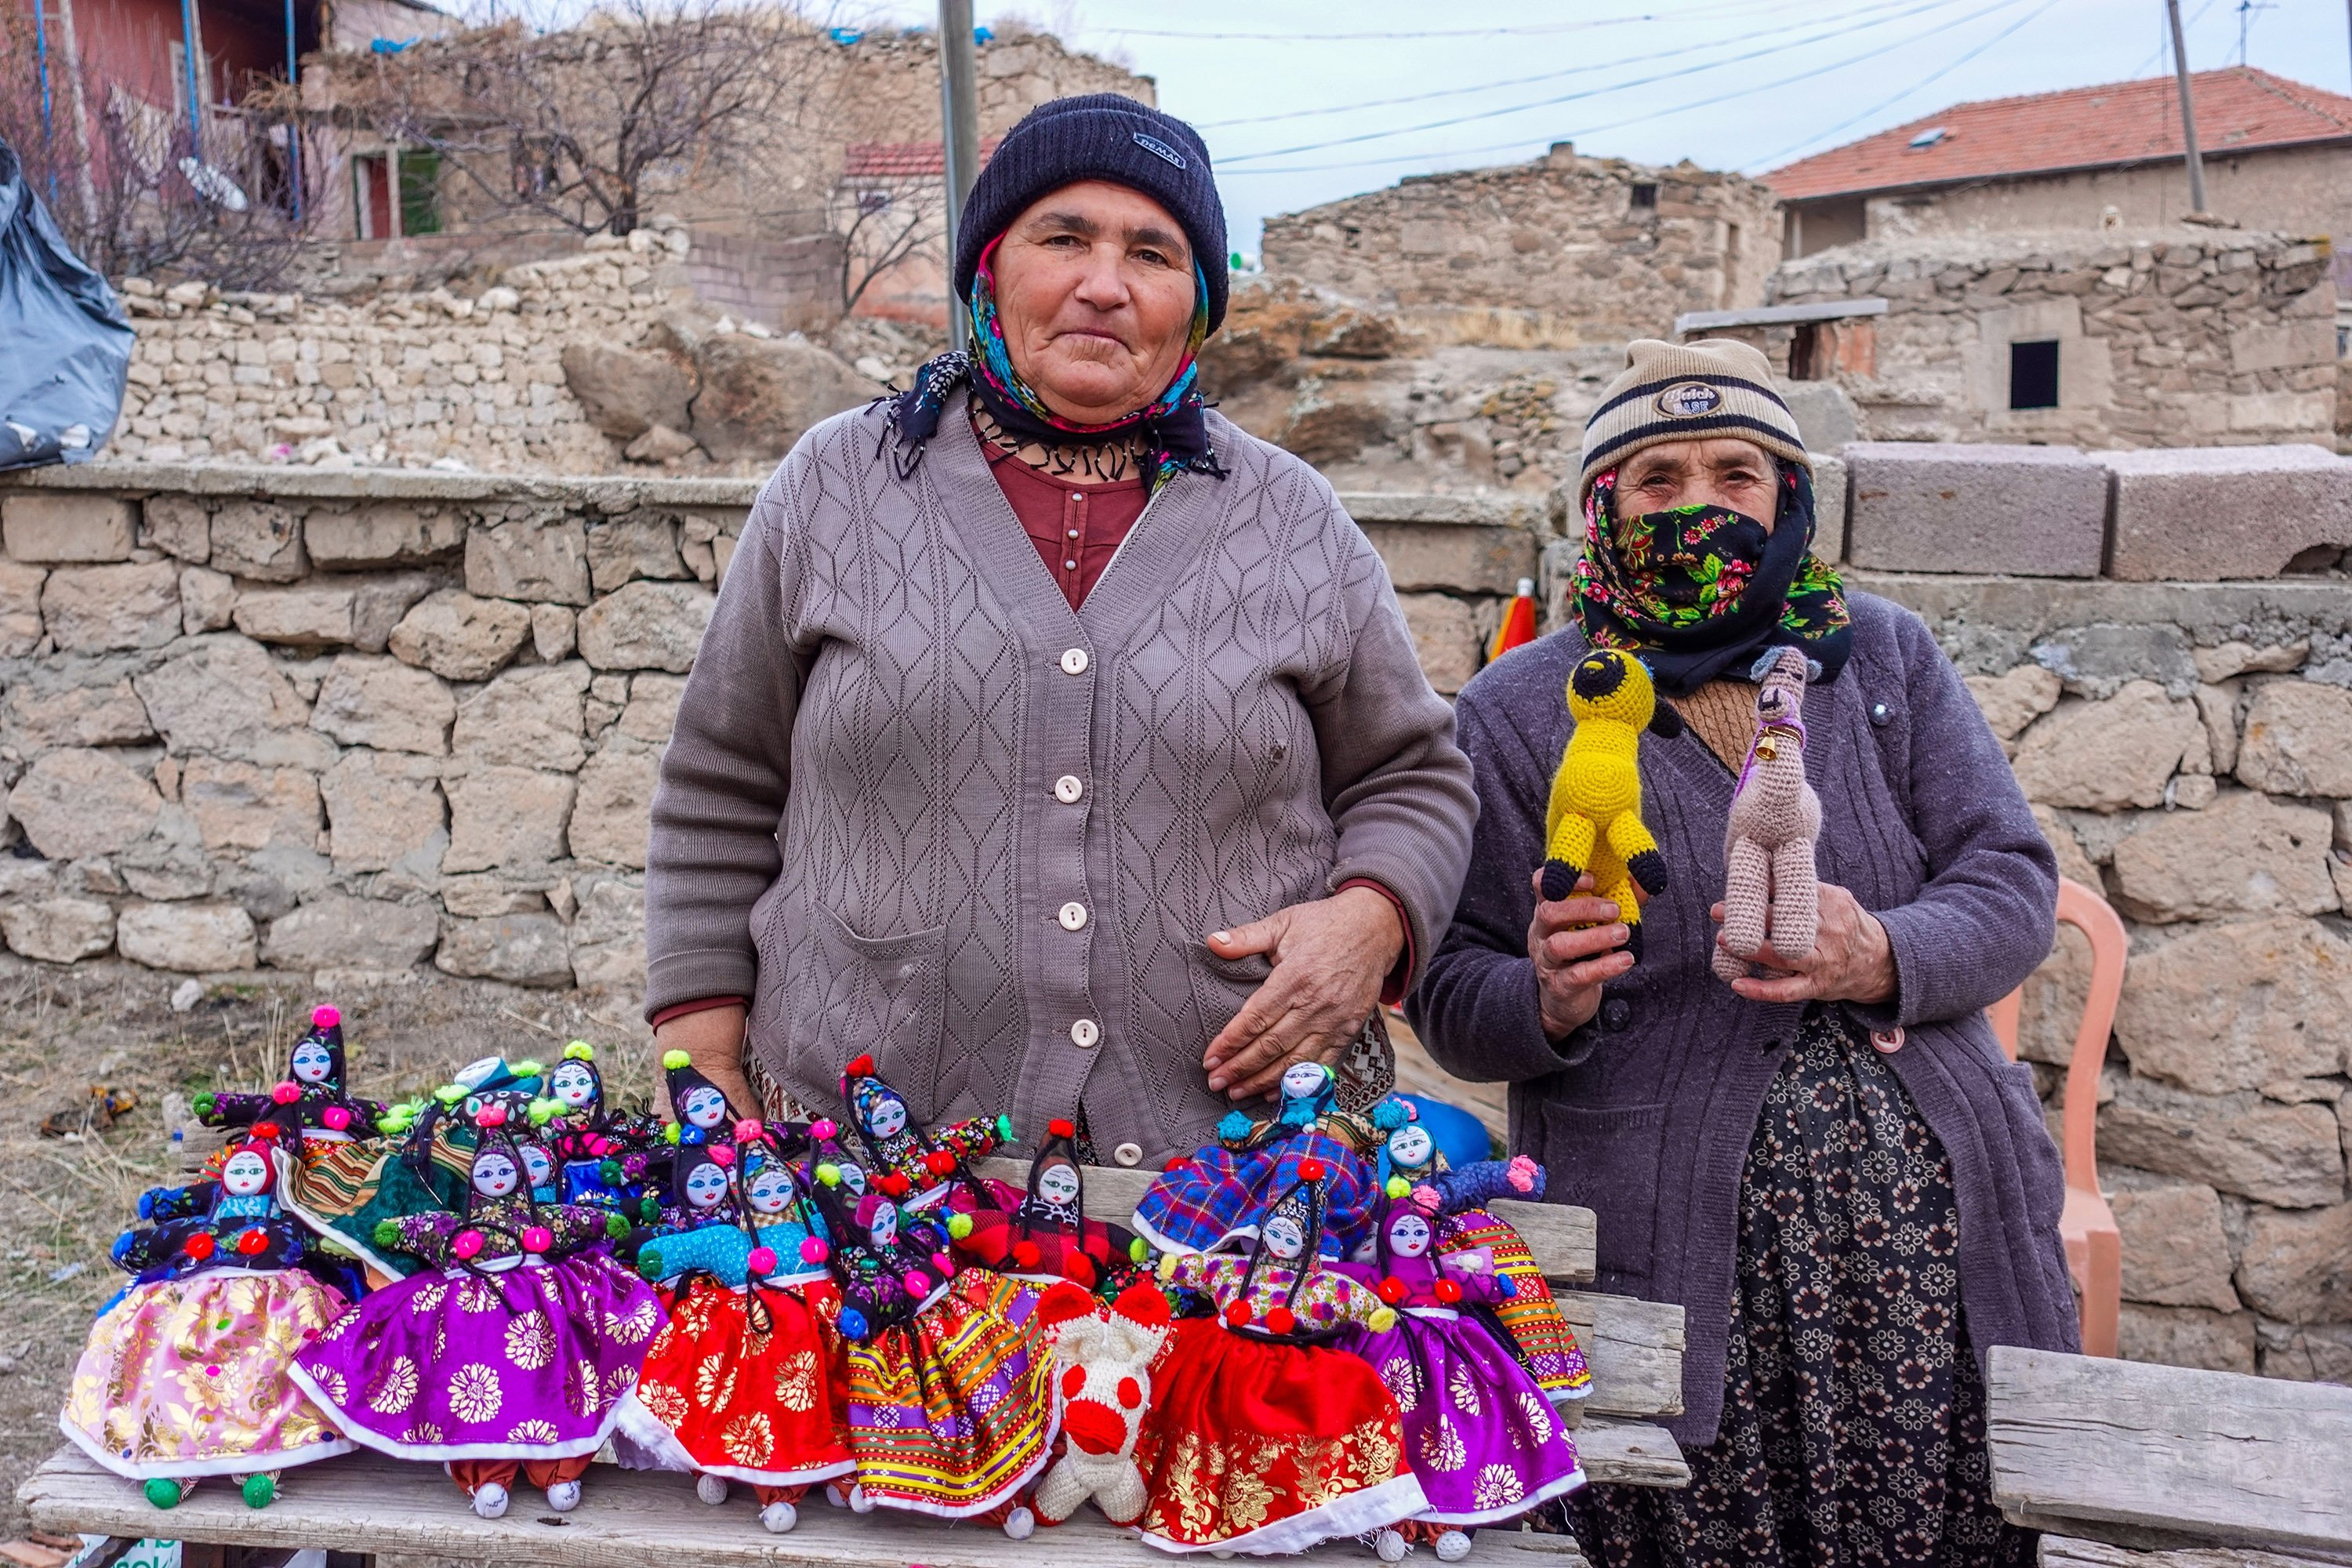 Hayriye Teyze (R) and Ayşe Teyze pose with their handmade dolls. (Photo by Argun Konuk)